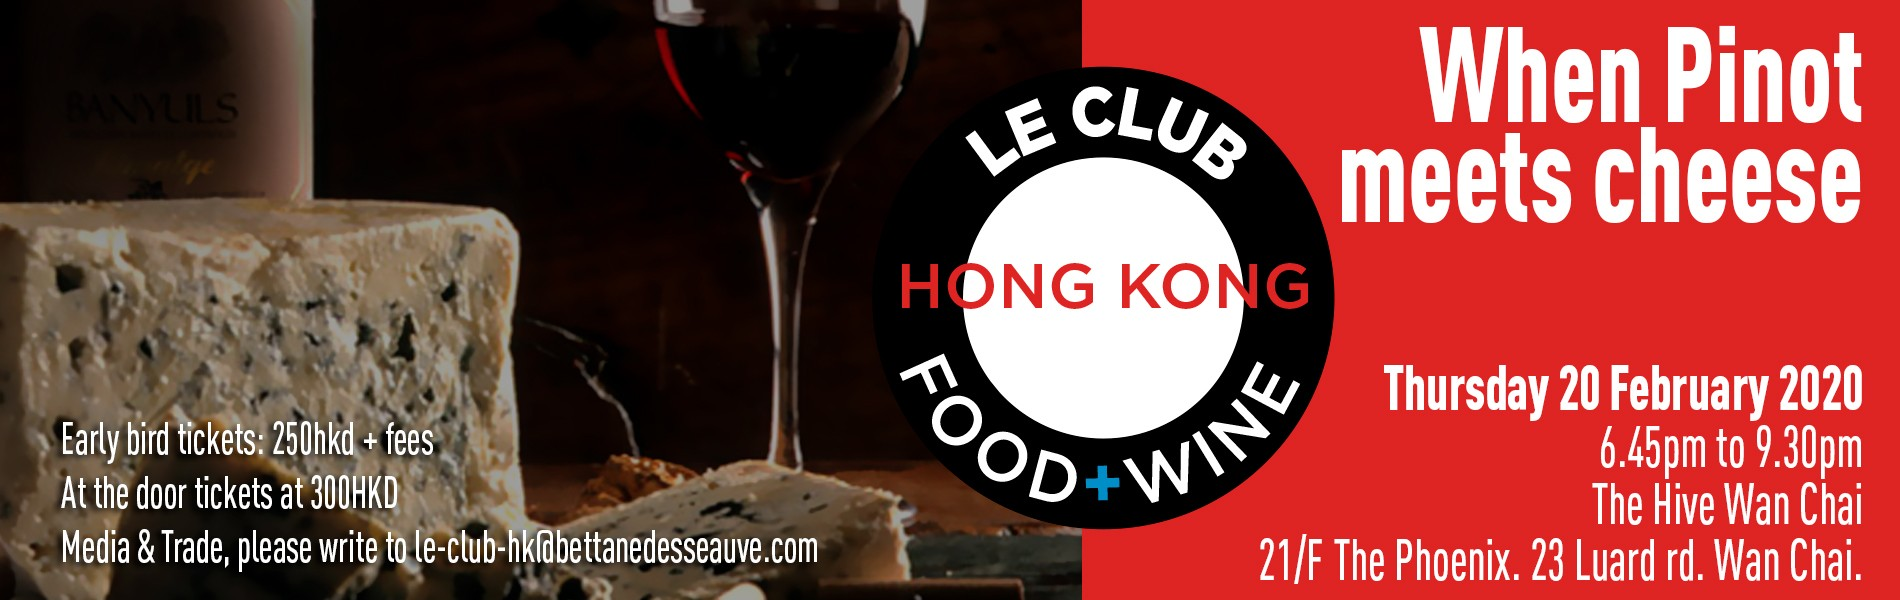 Le Club Food & Wine - When Pinot meets cheese